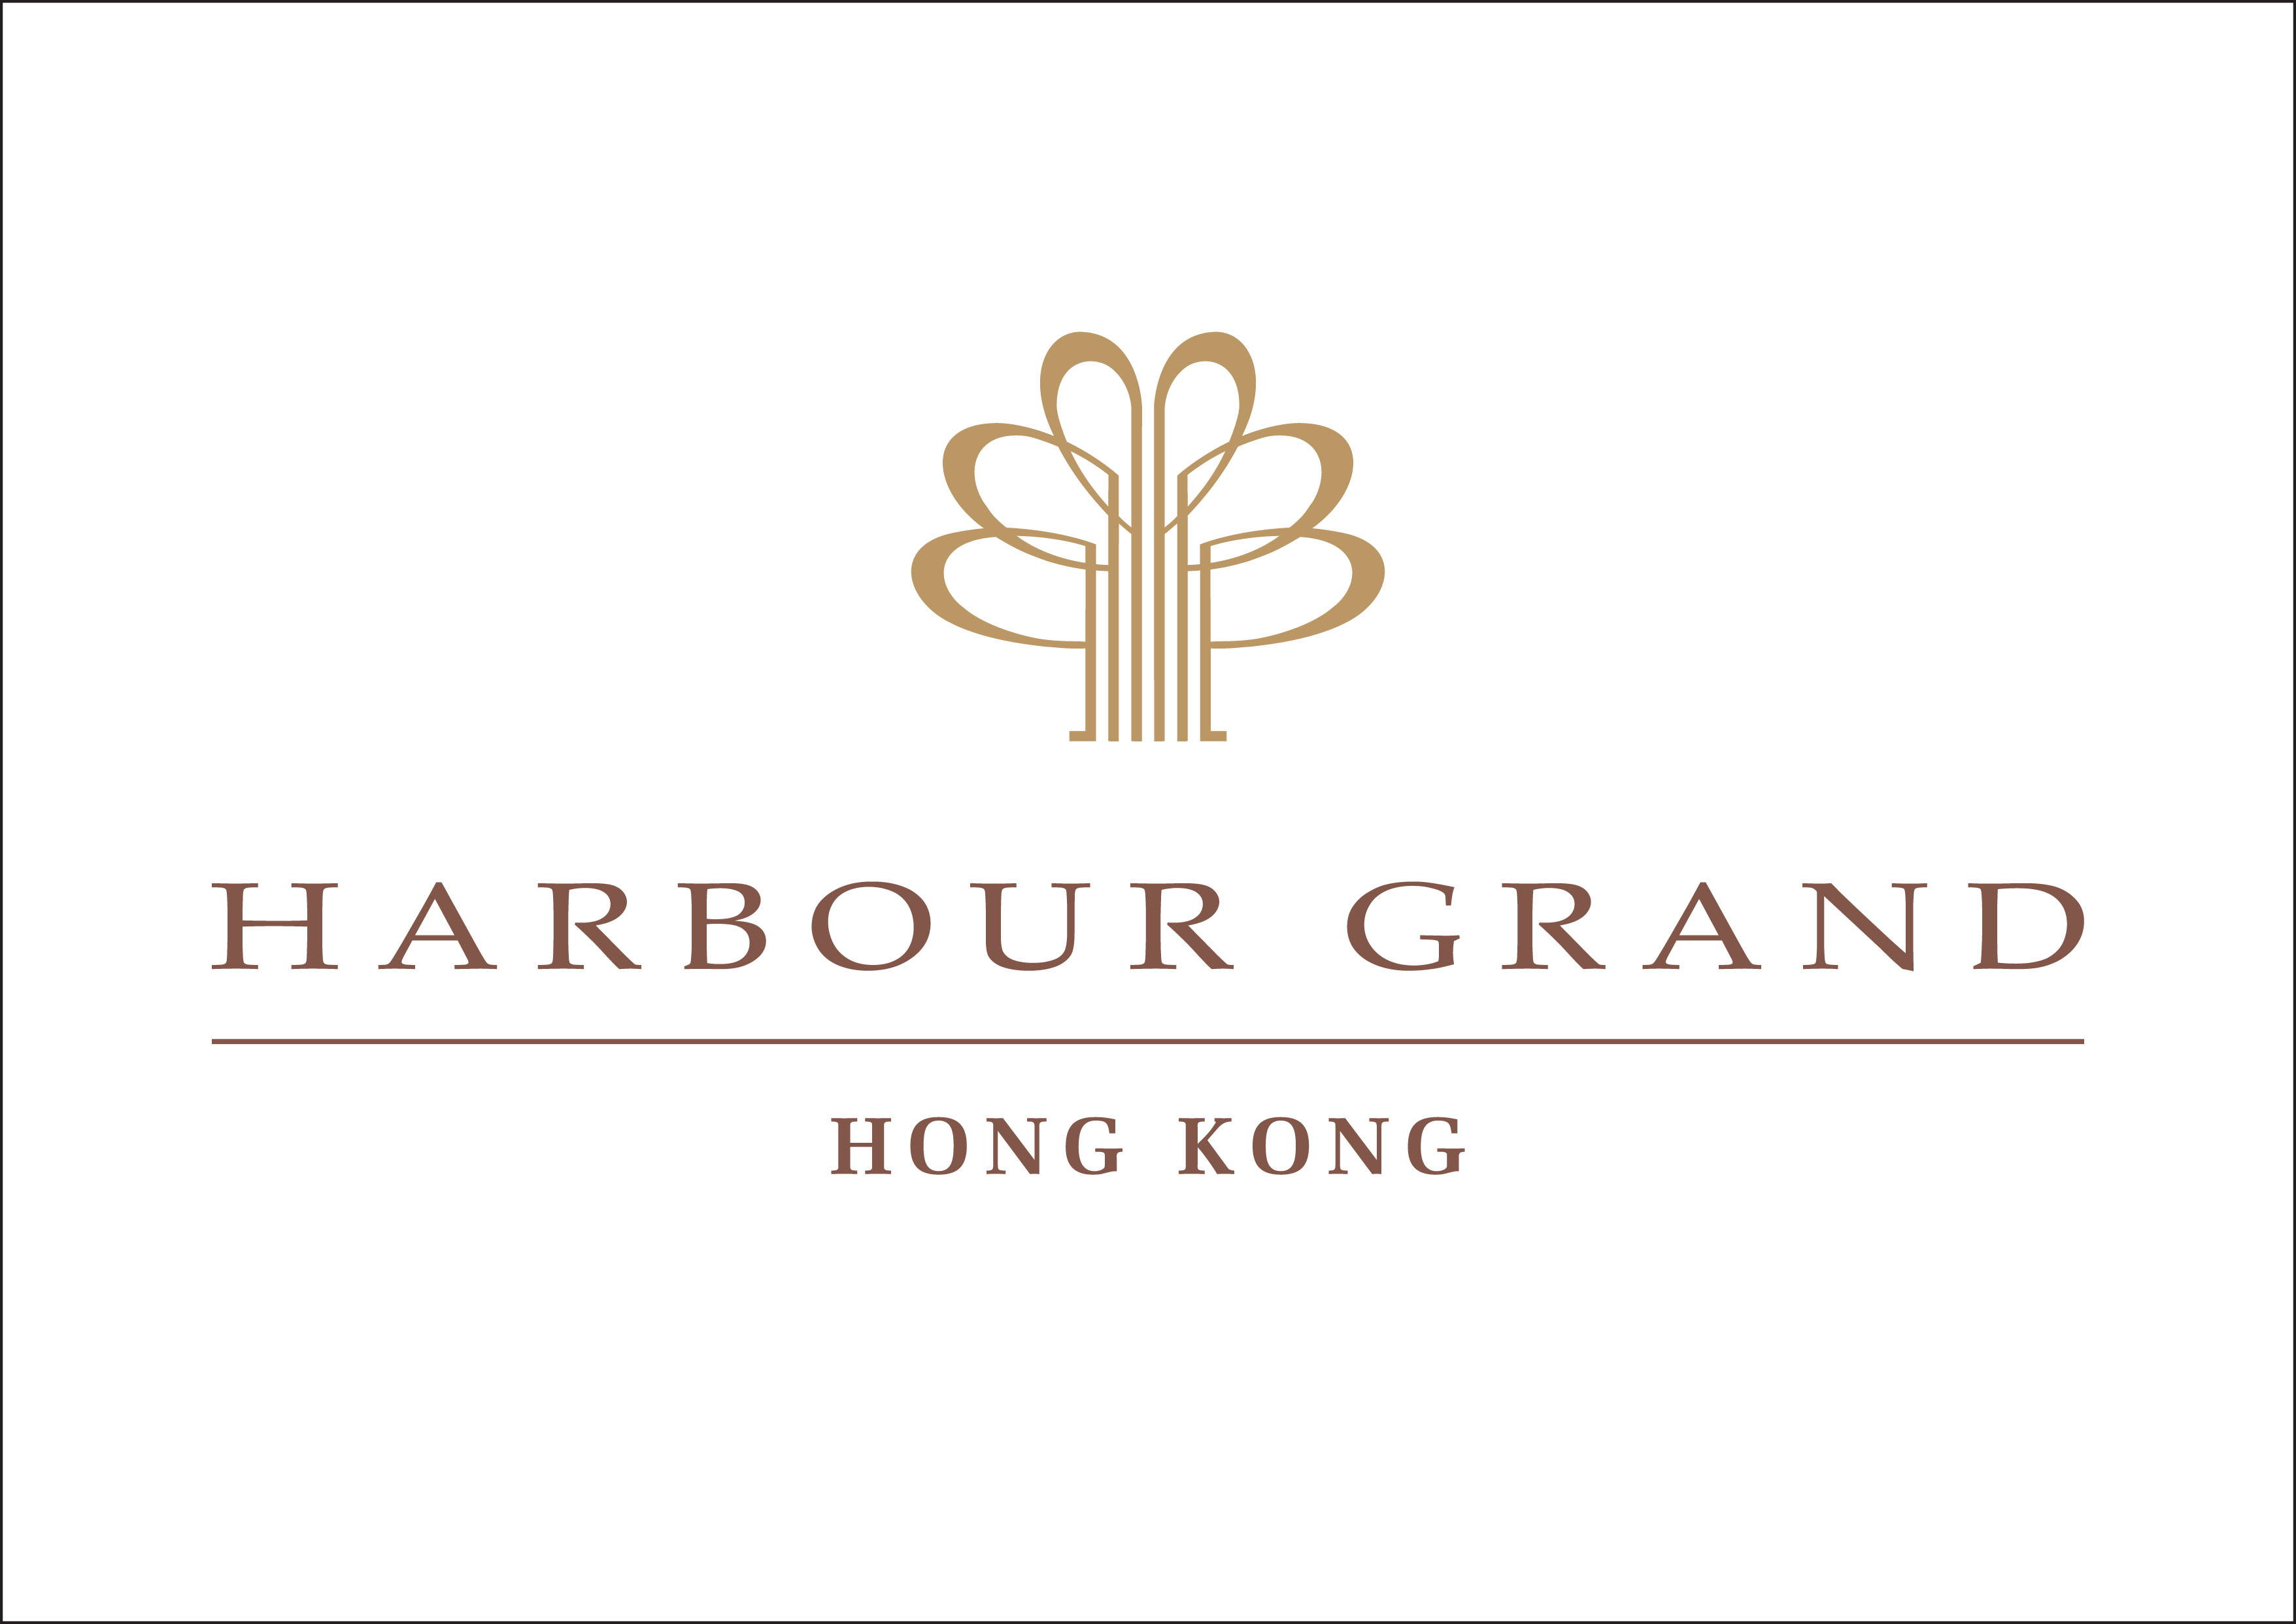 Harbour Grand